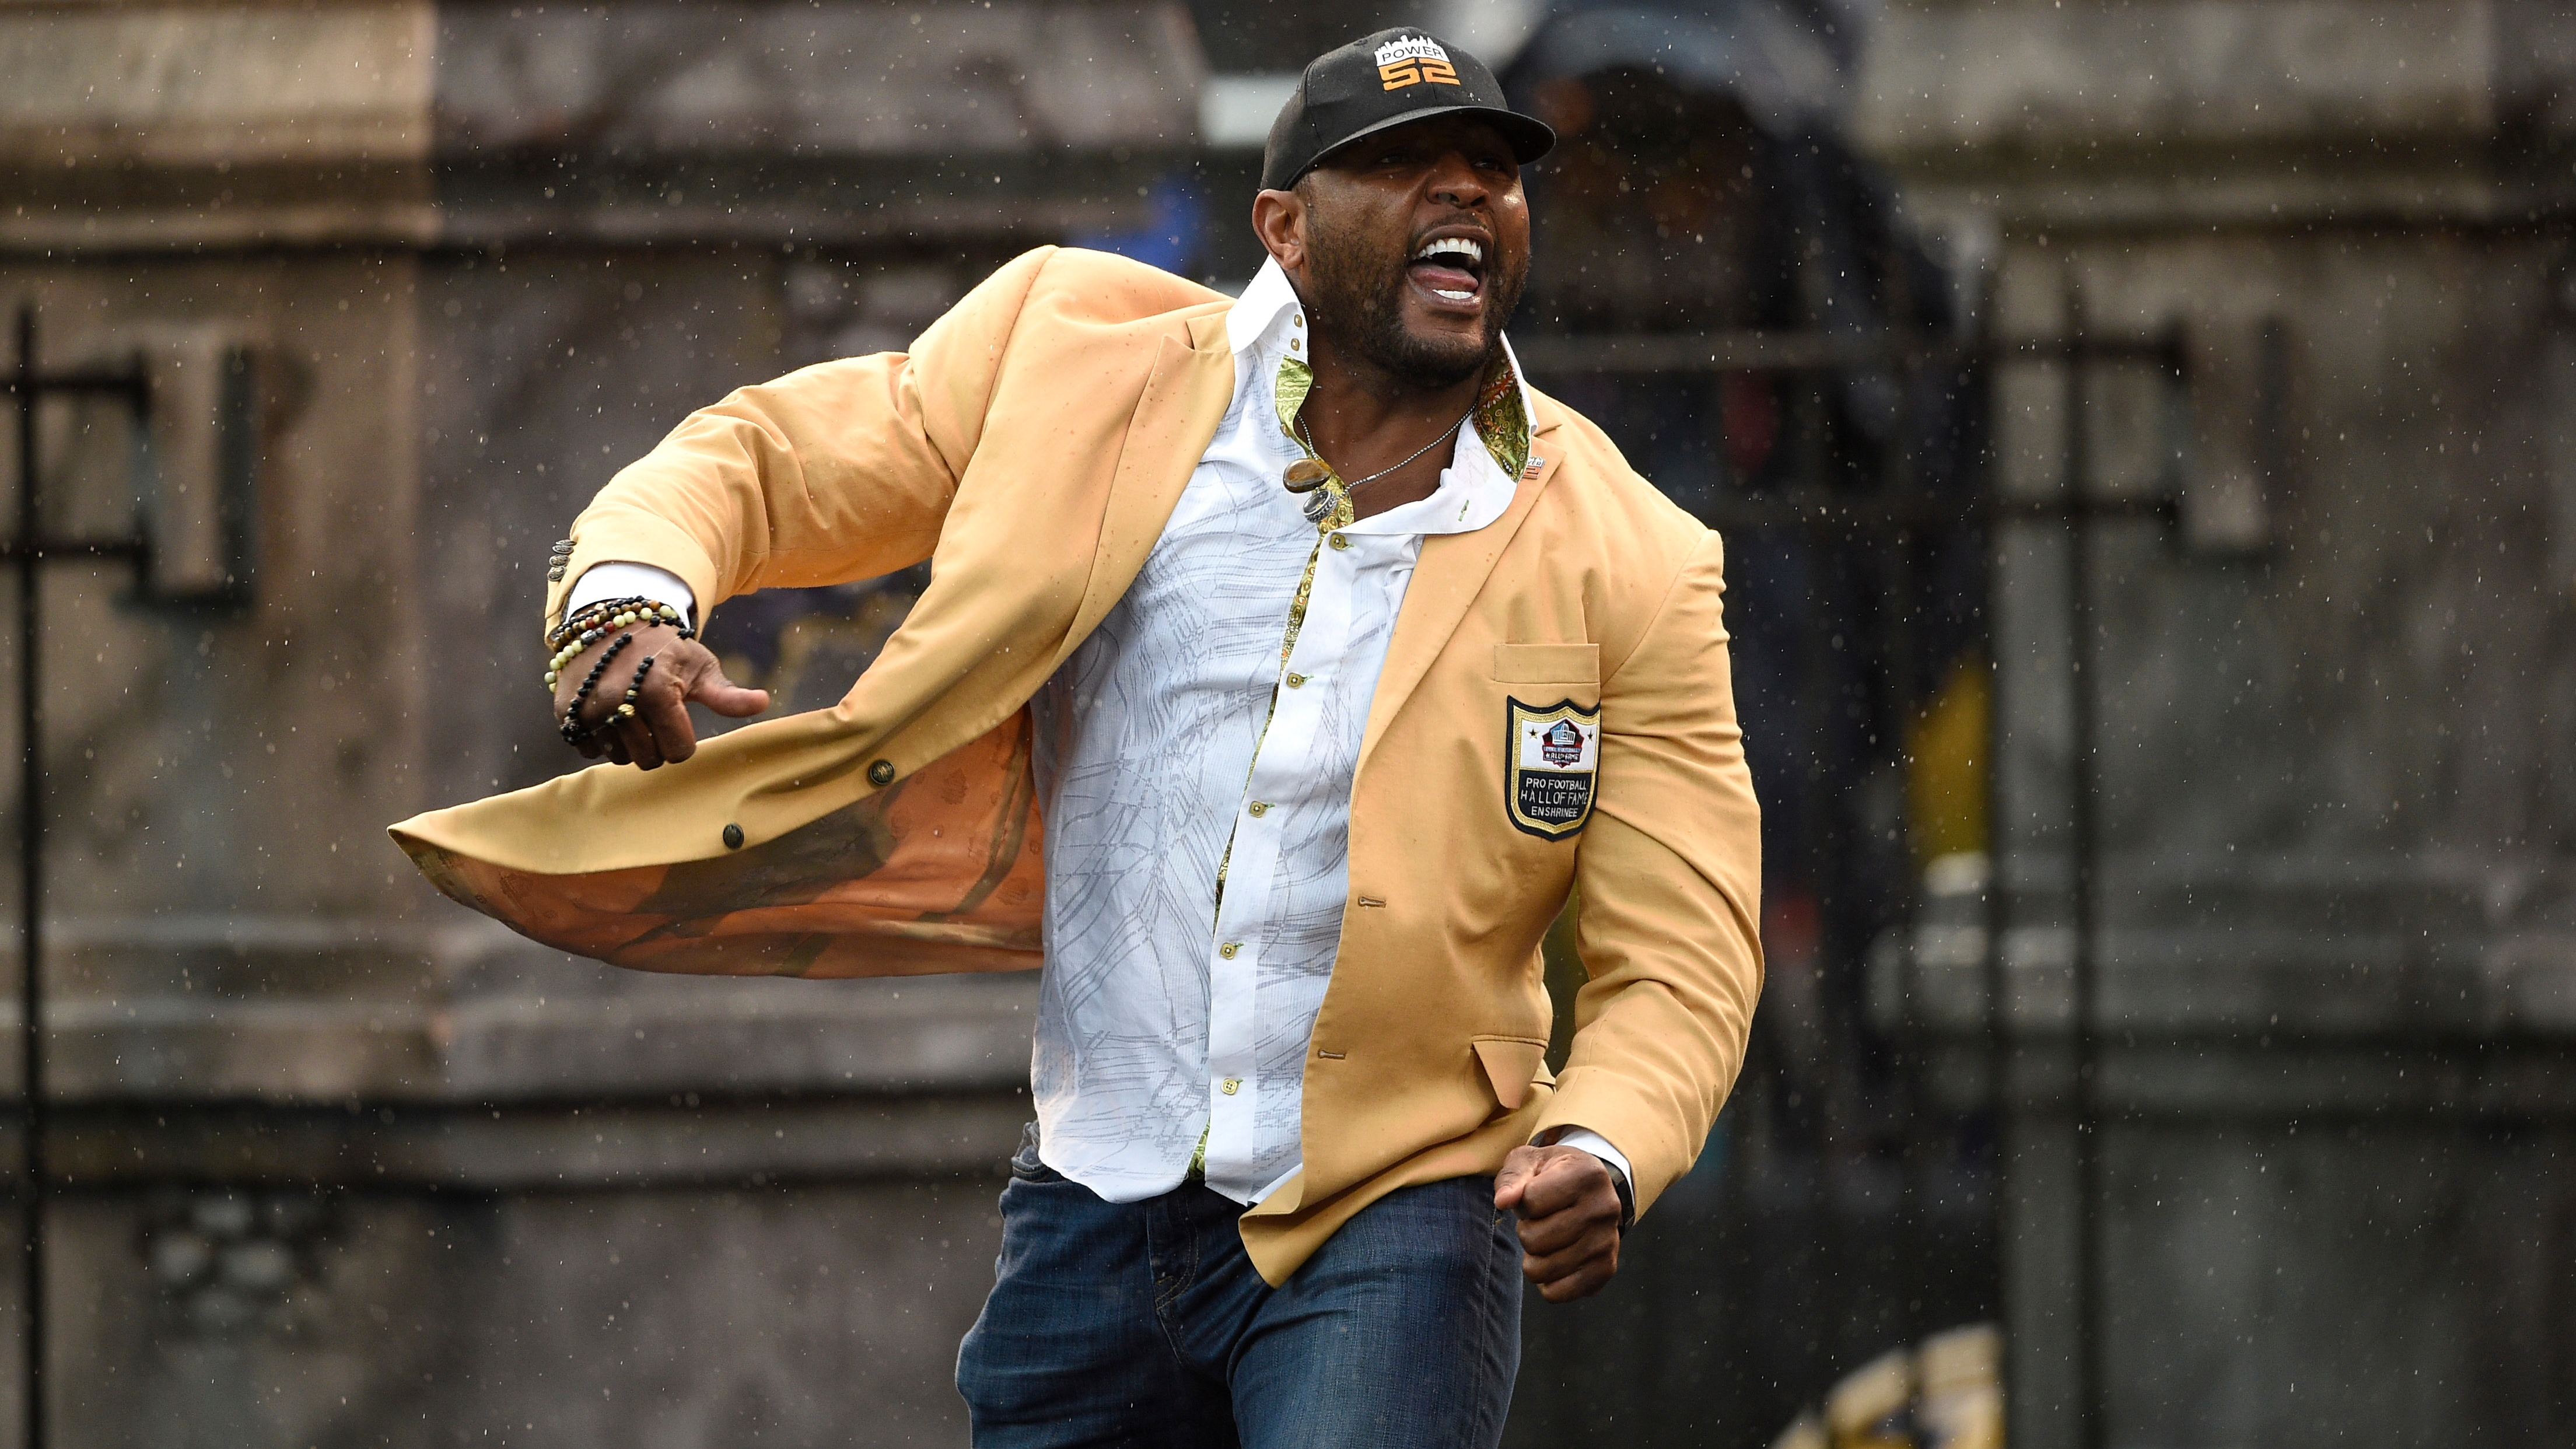 How to do the ray lewis squirrel dance business insider.